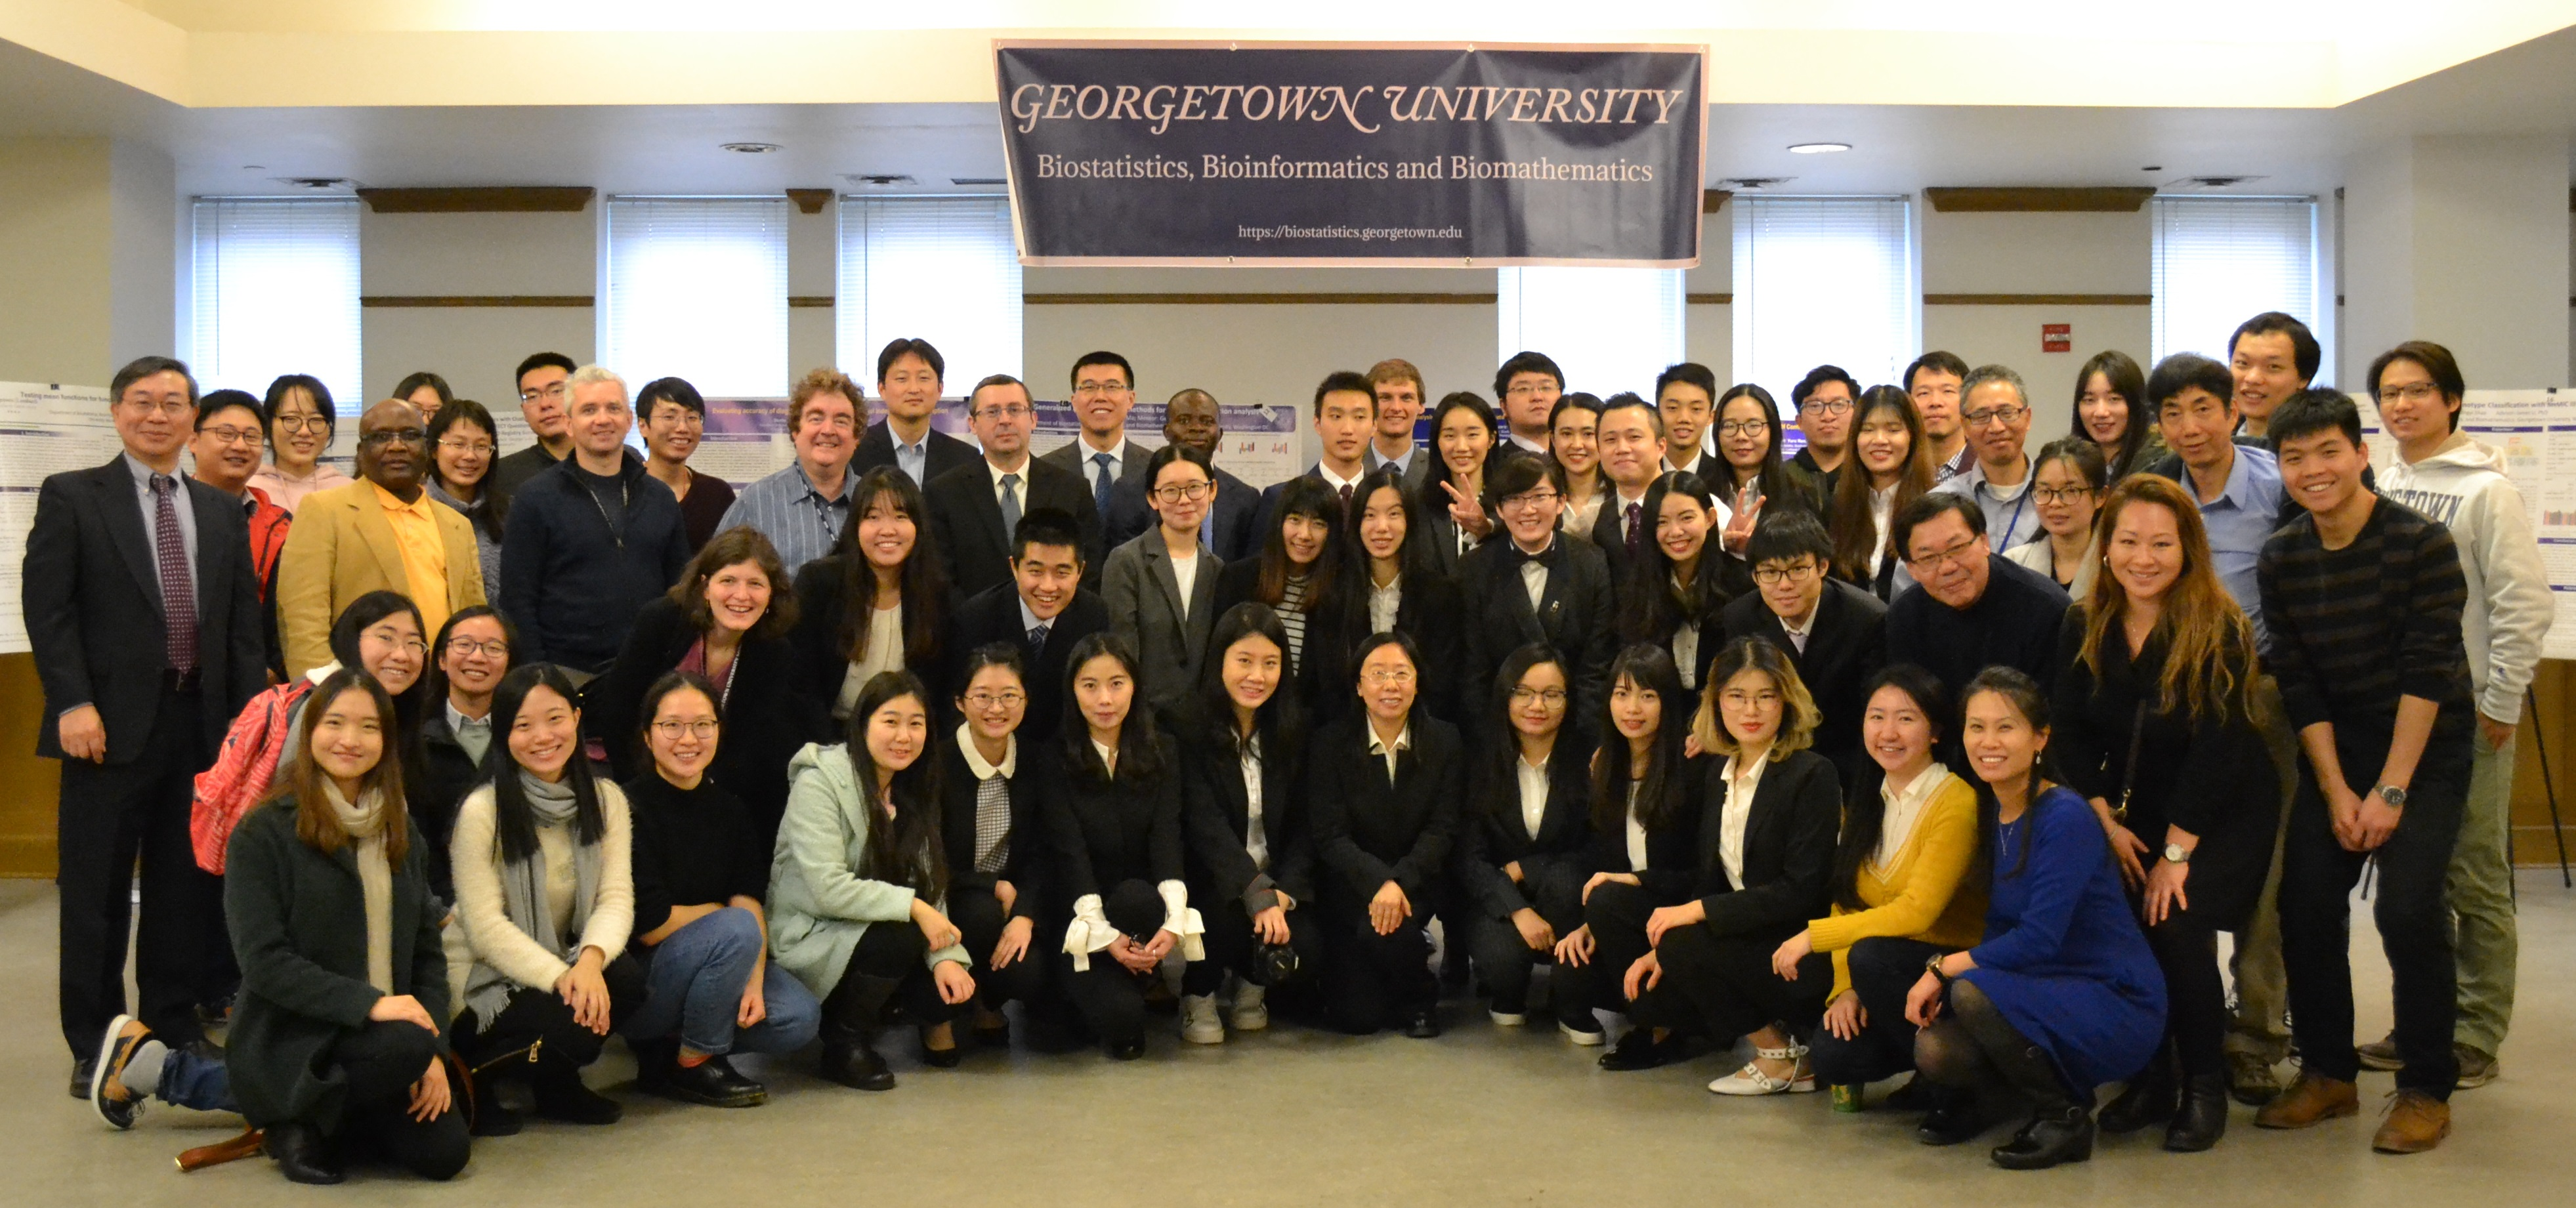 Graduating MS students, first-year MS students and Ph.D. students pose with Faculty and Staff at the 2017 Annual Research Practicum Defense.